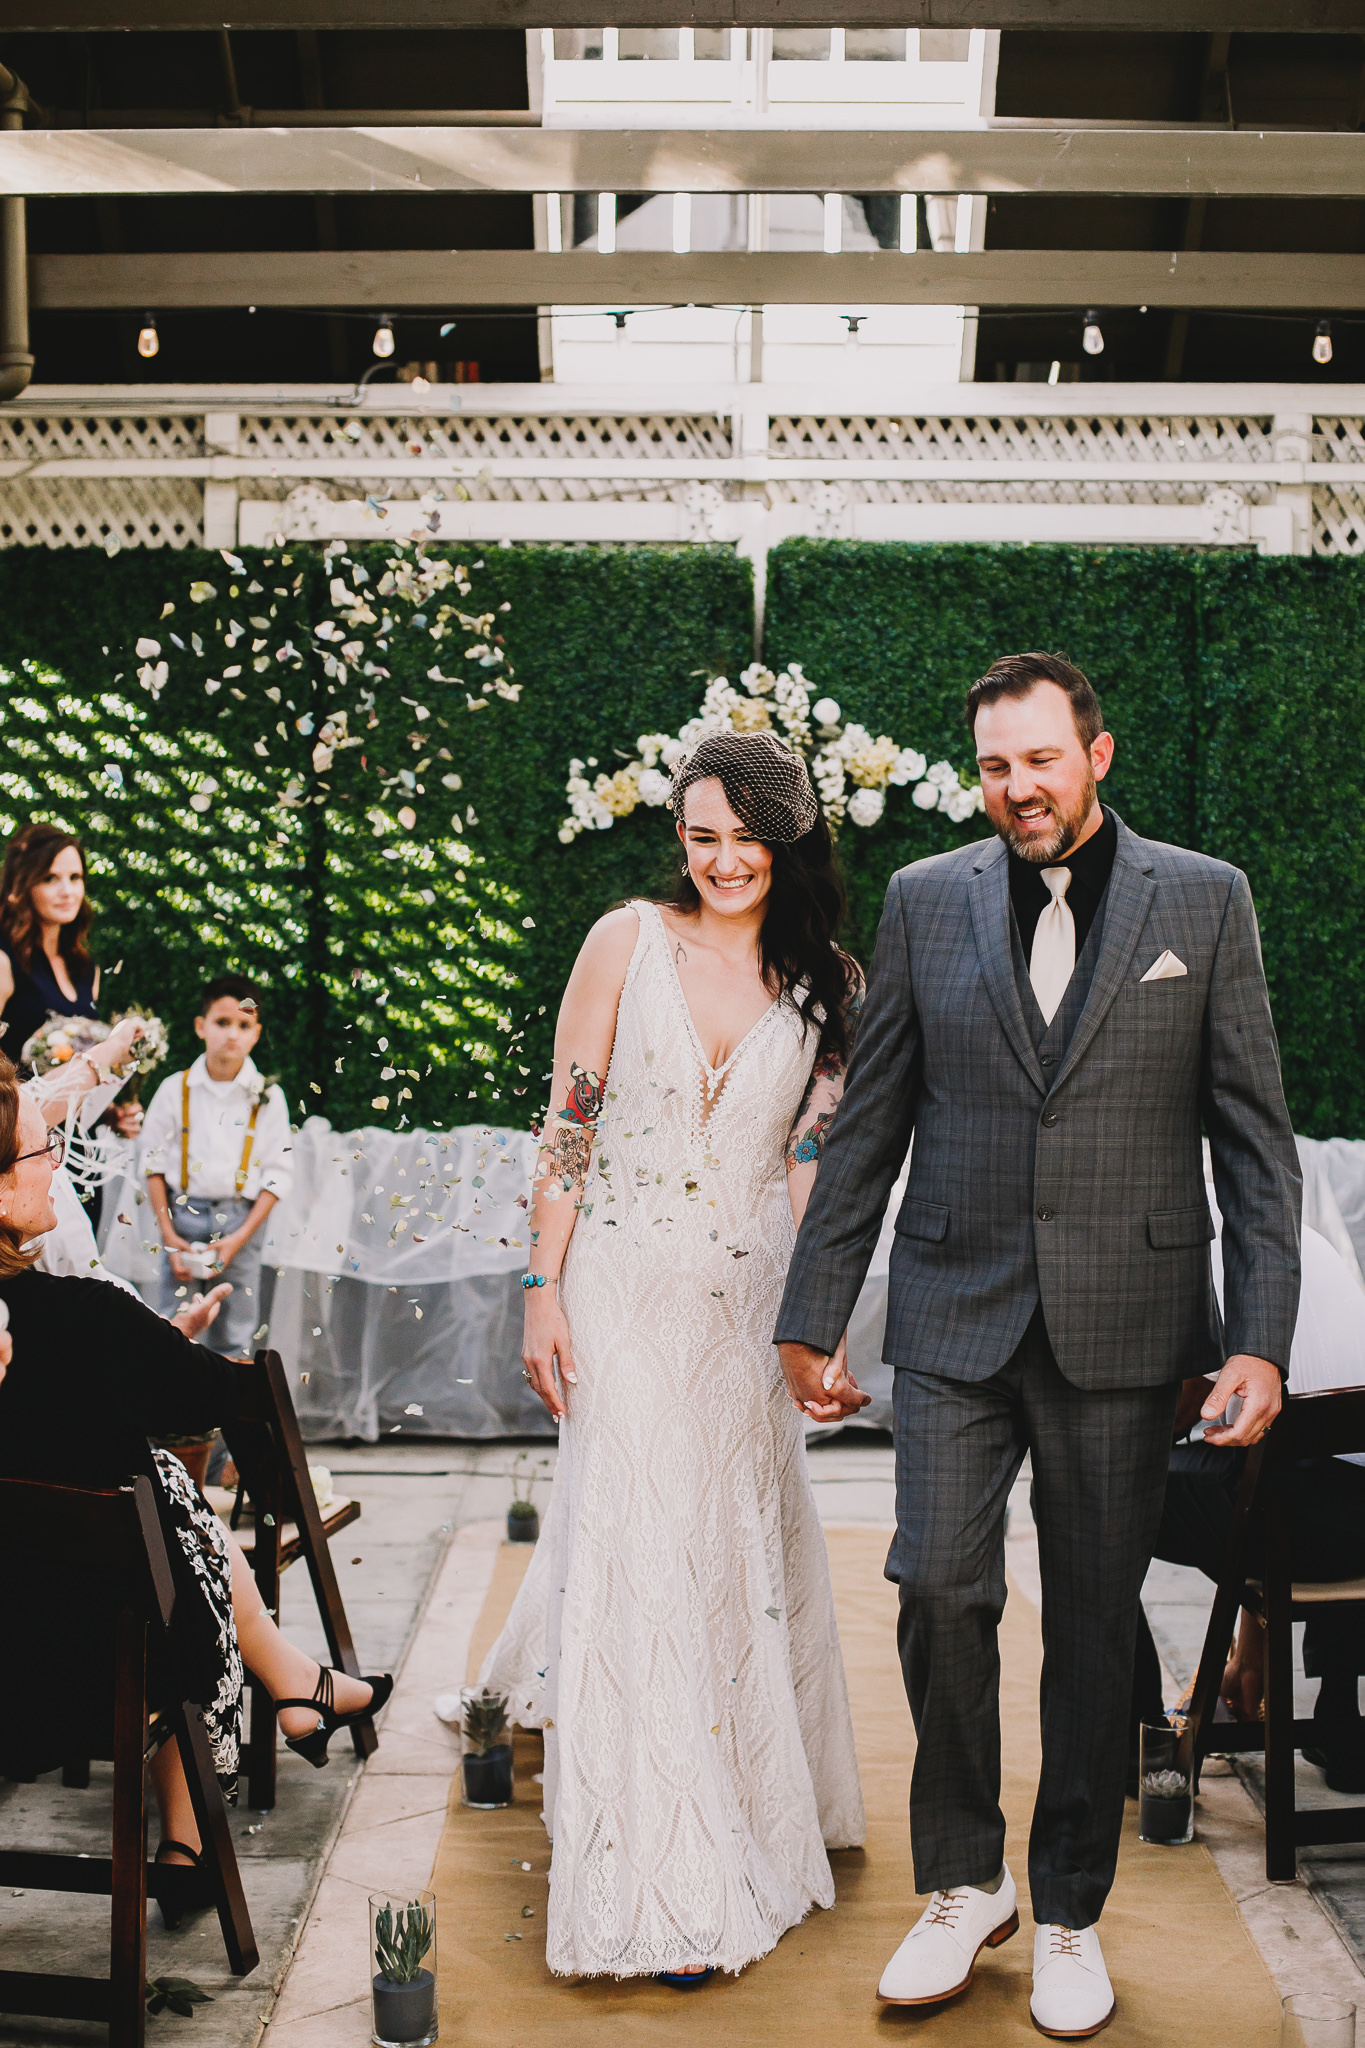 Archer Inspired Photography Sara and Aaron Winchester Mystery House NorCal San Jose California Wedding Photographer-173.jpg